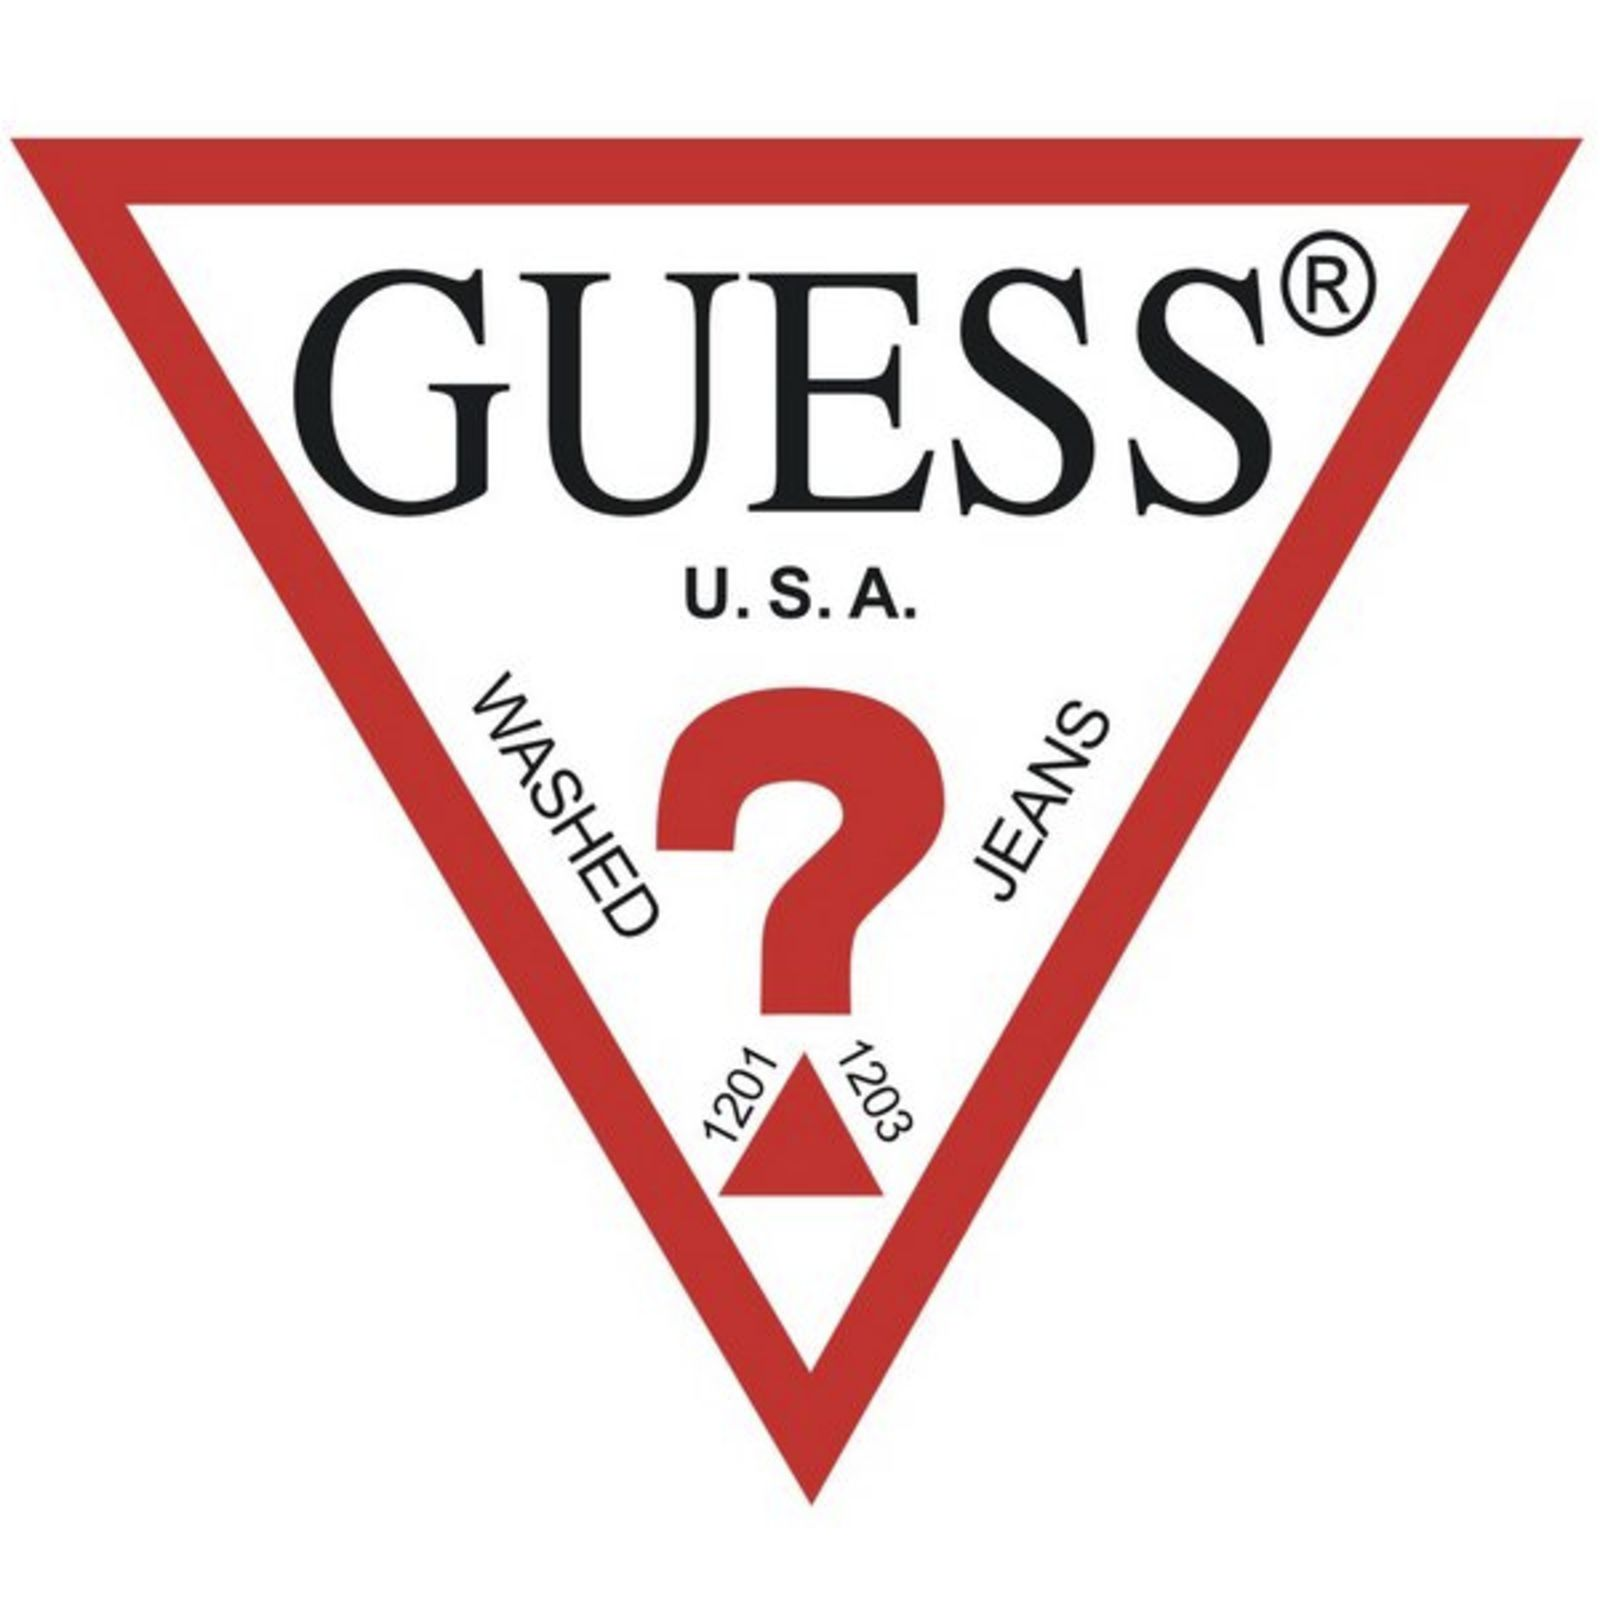 GUESS Accessories (Image 1)